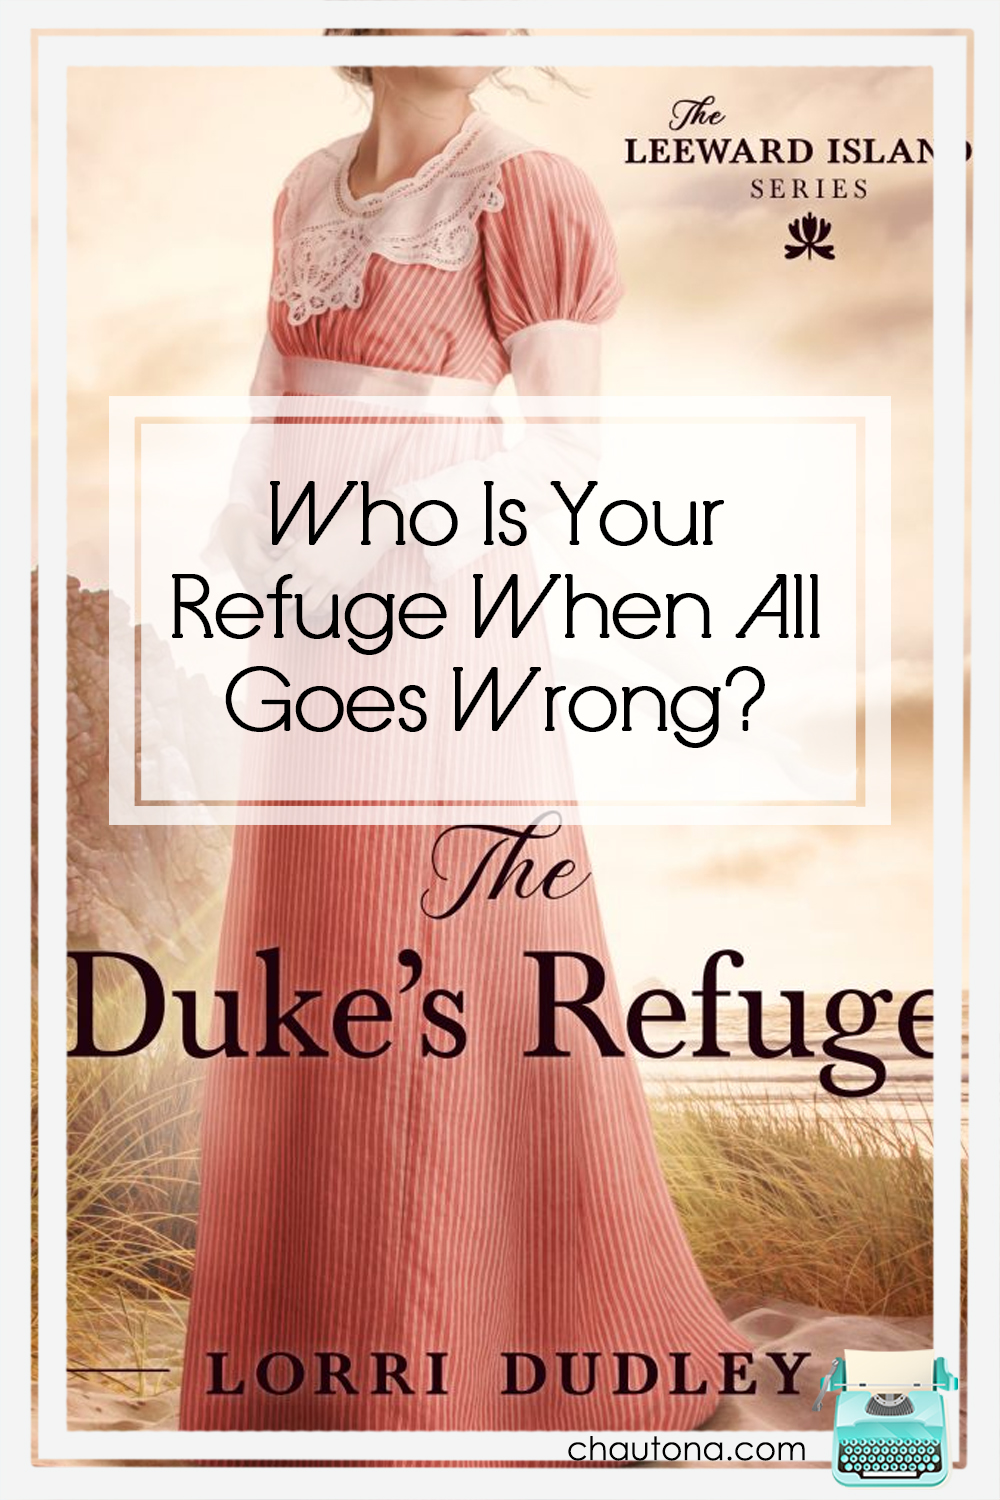 The Duke's Refuge offers more than a refuge from cliched Regency novels--it points to the True Refuge and makes you think about why we so often run from Him. via @chautonahavig